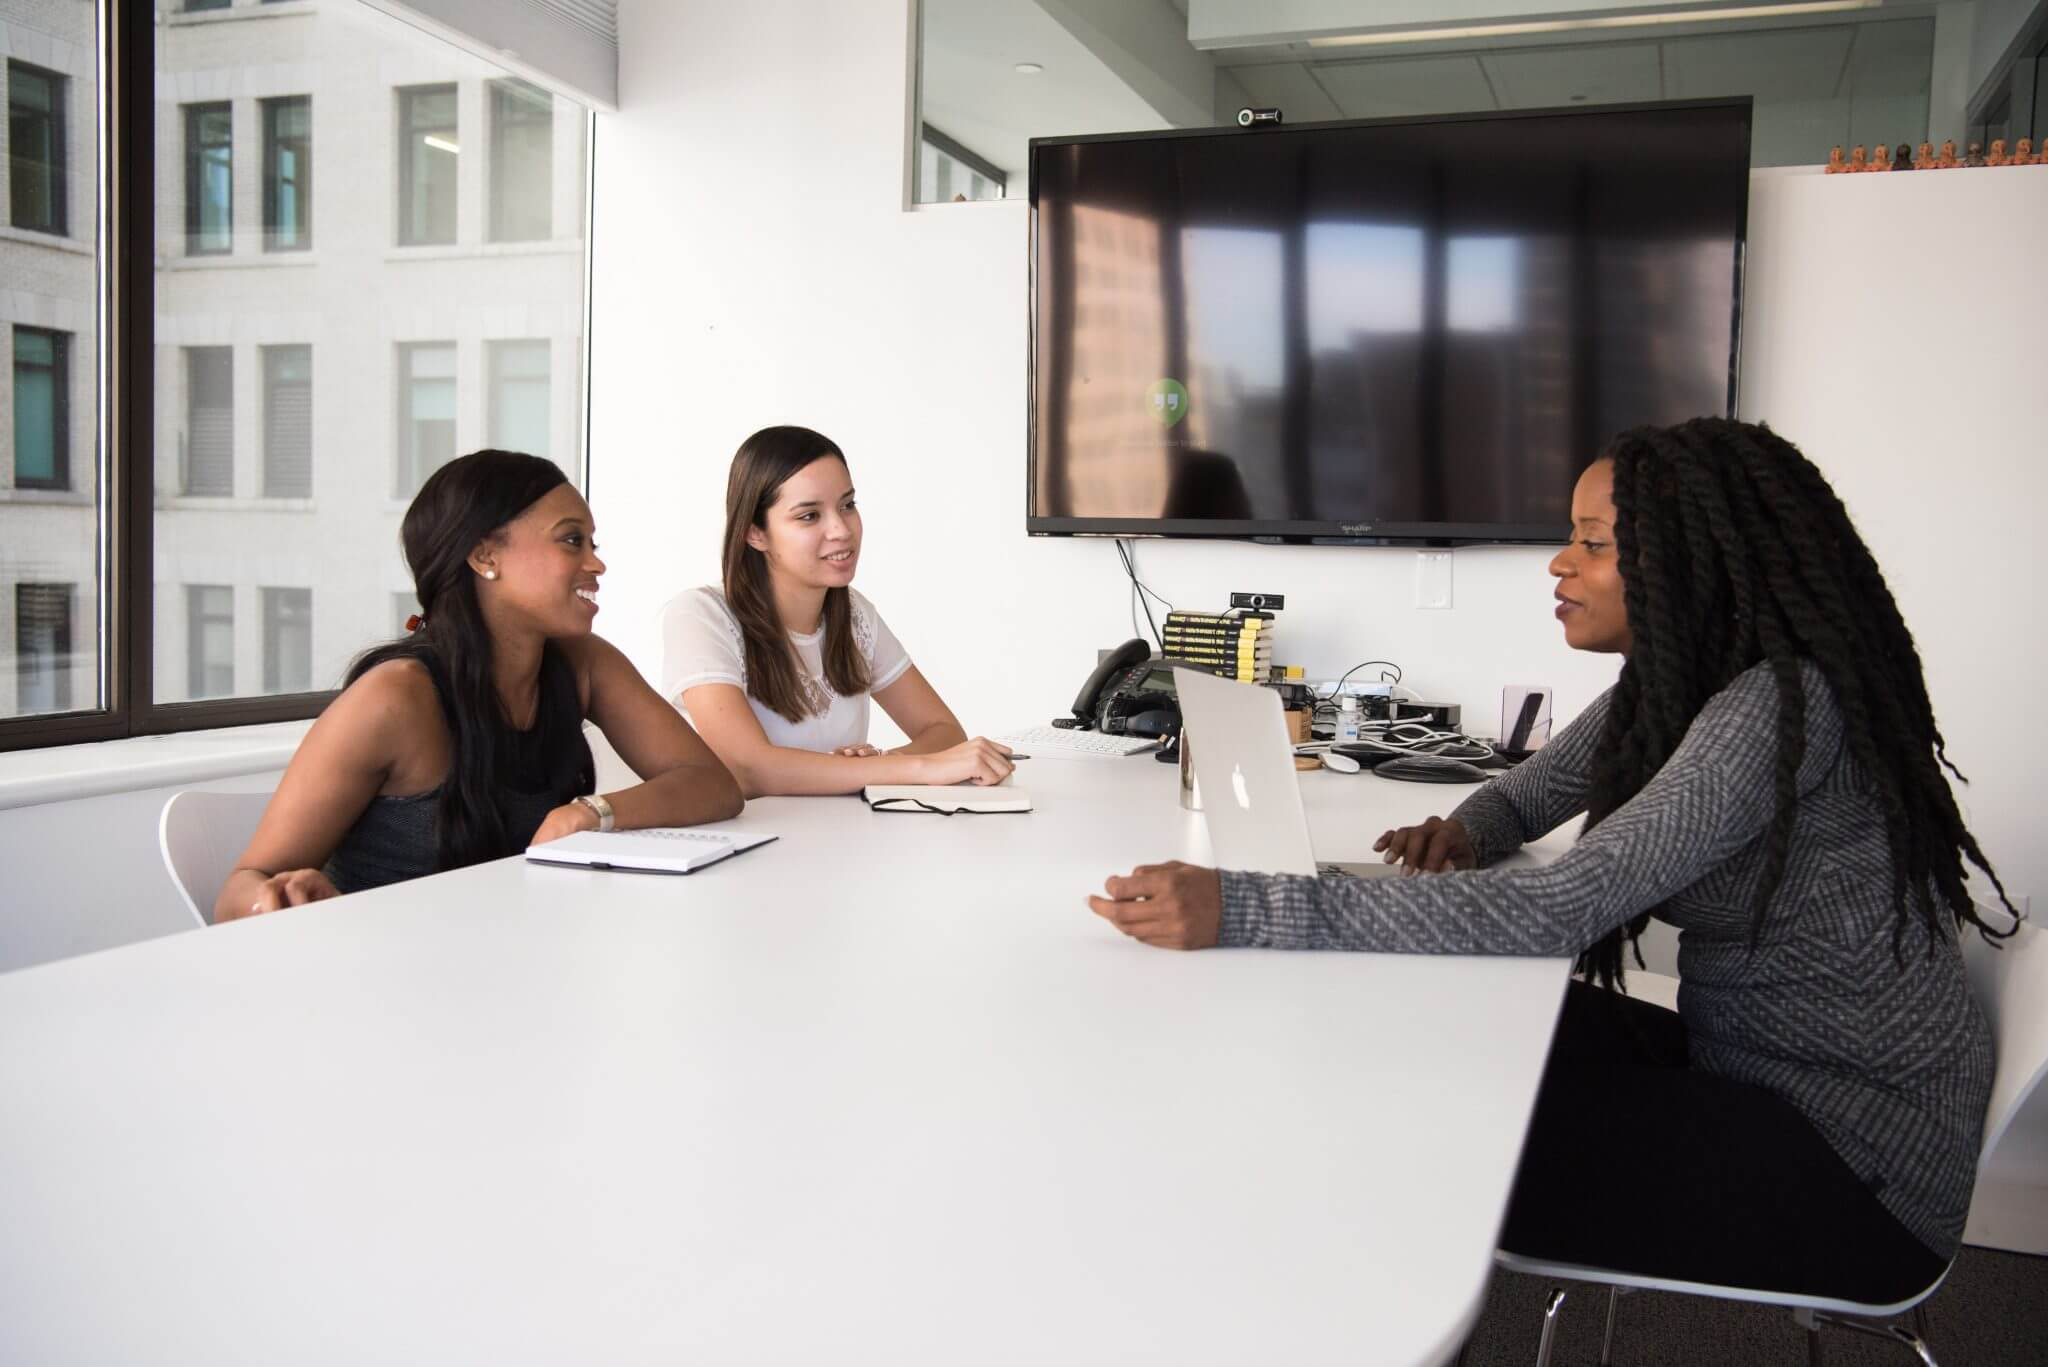 Business women sitting at a conference table having a discussion.